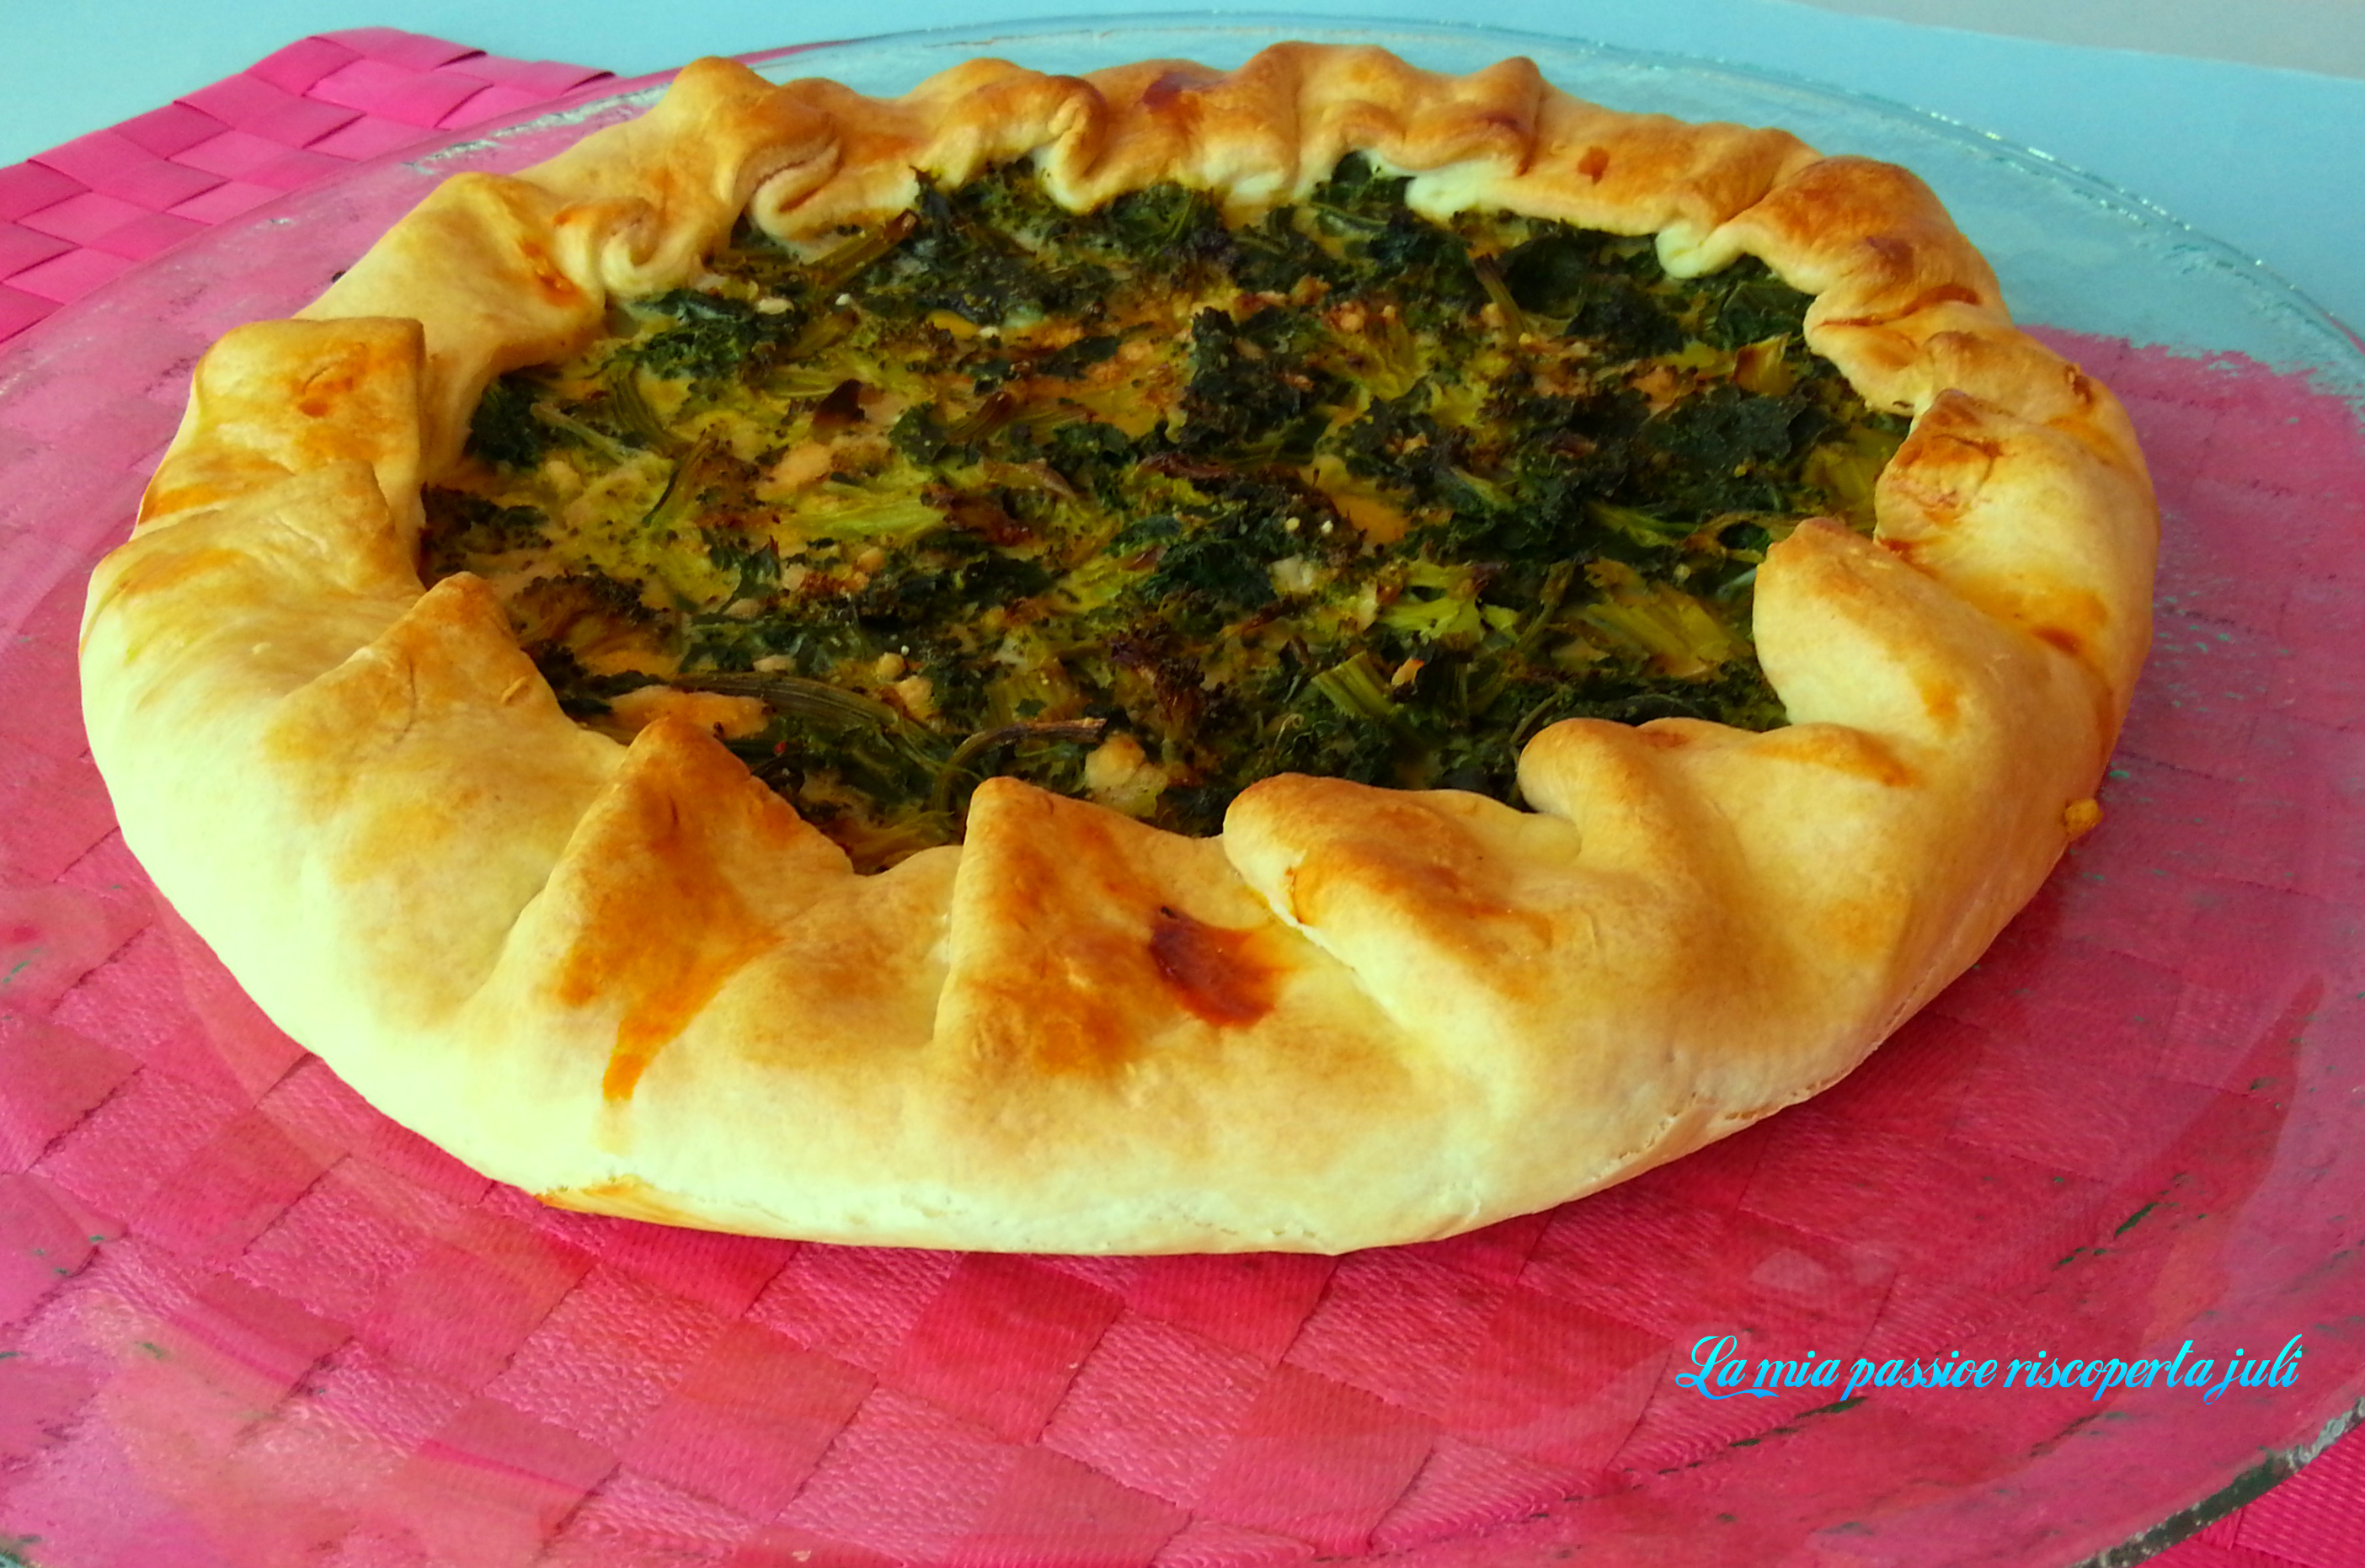 BRISE CON QUALEDDA E BROCCOLETTO